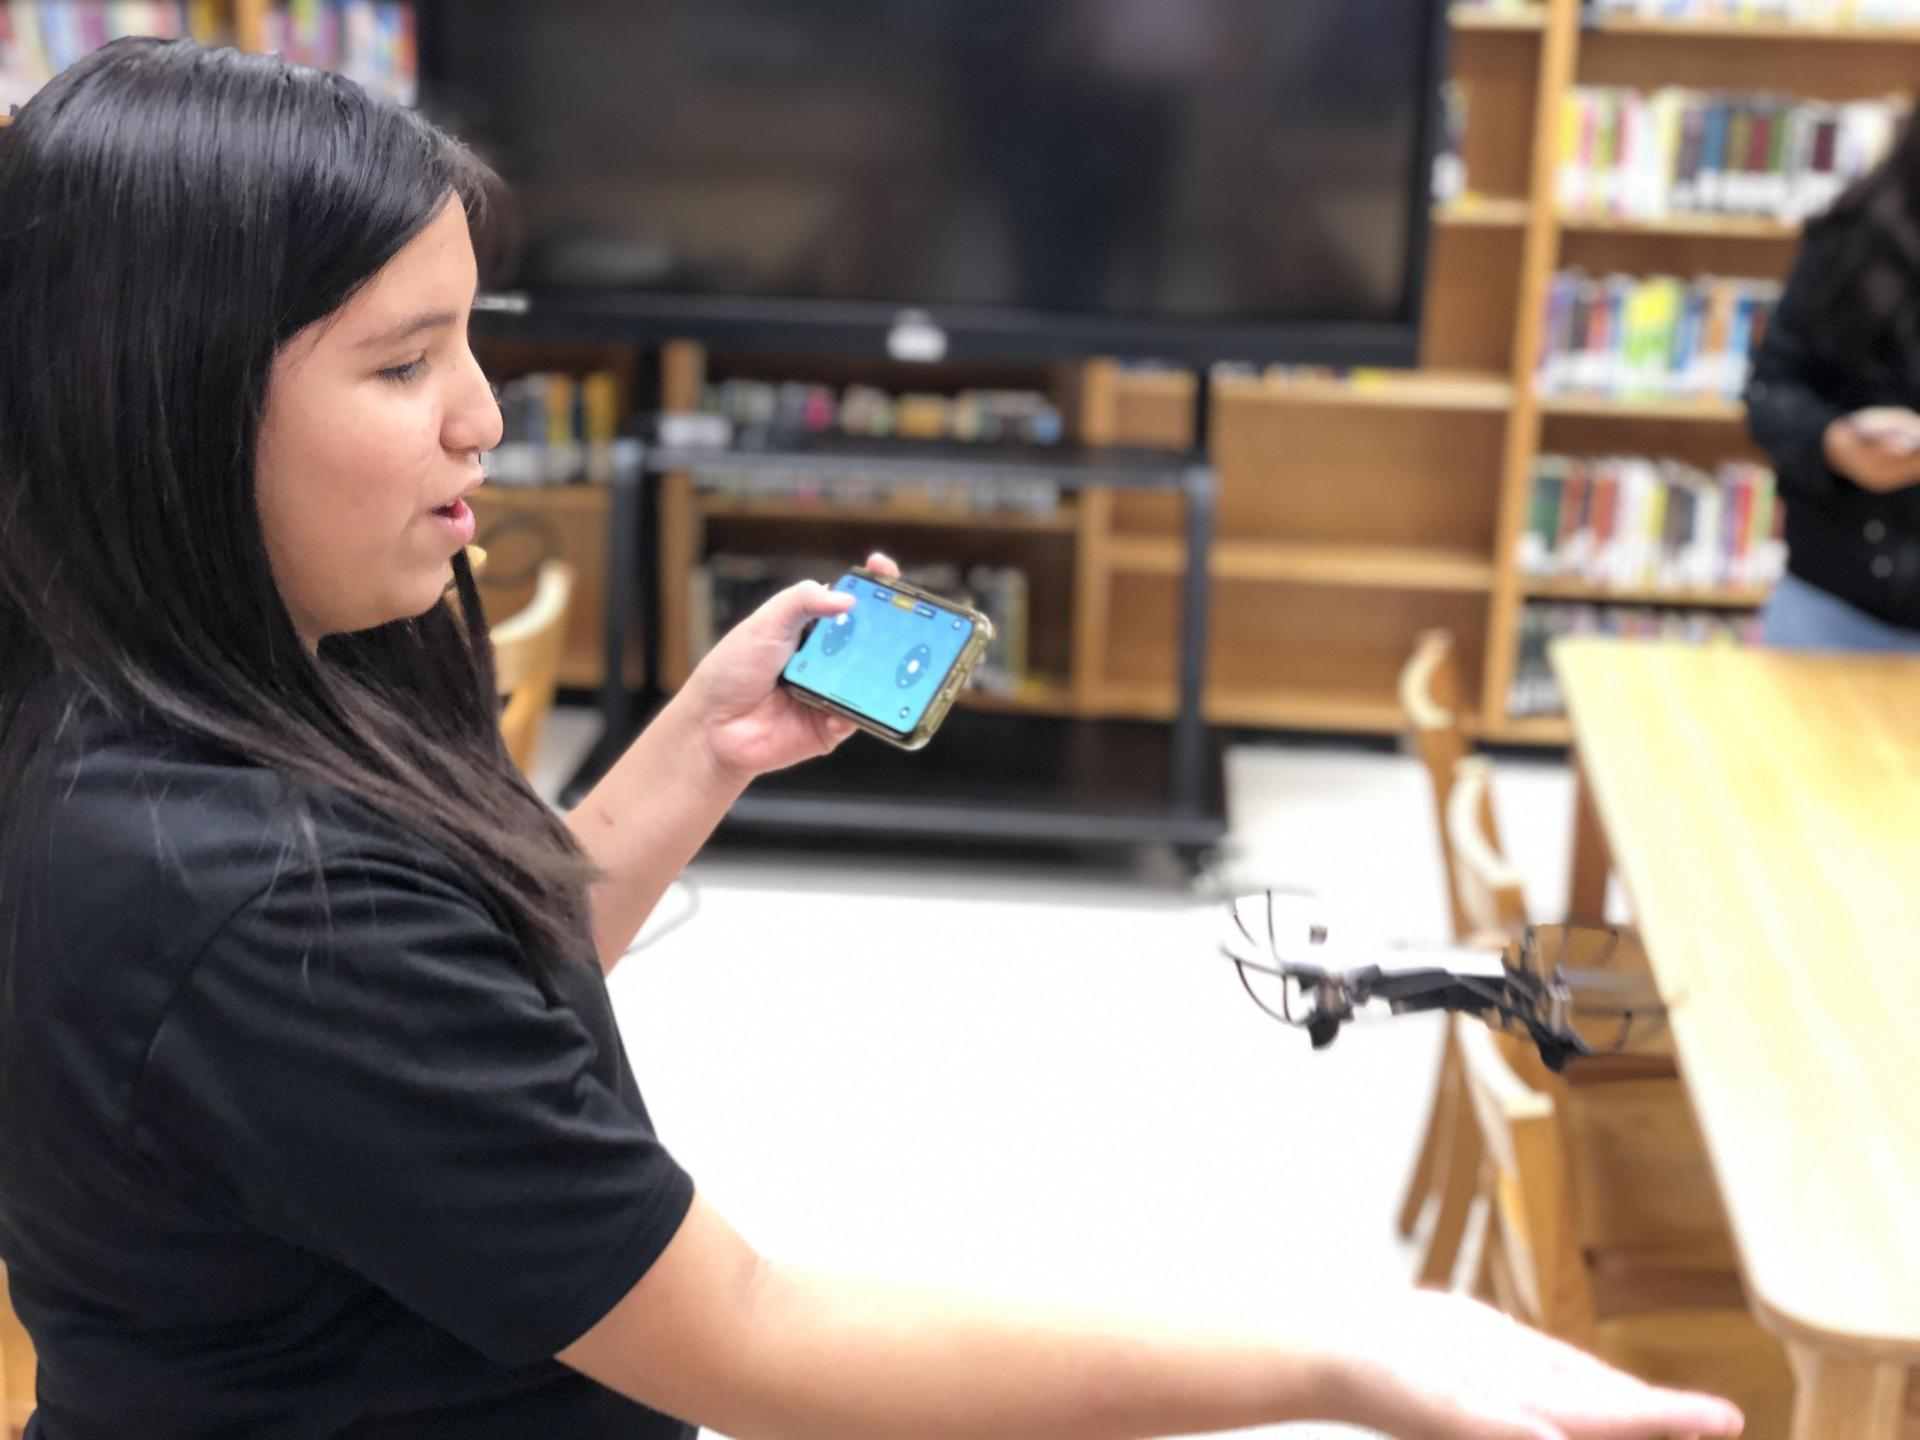 Student catches a drone in her hand.